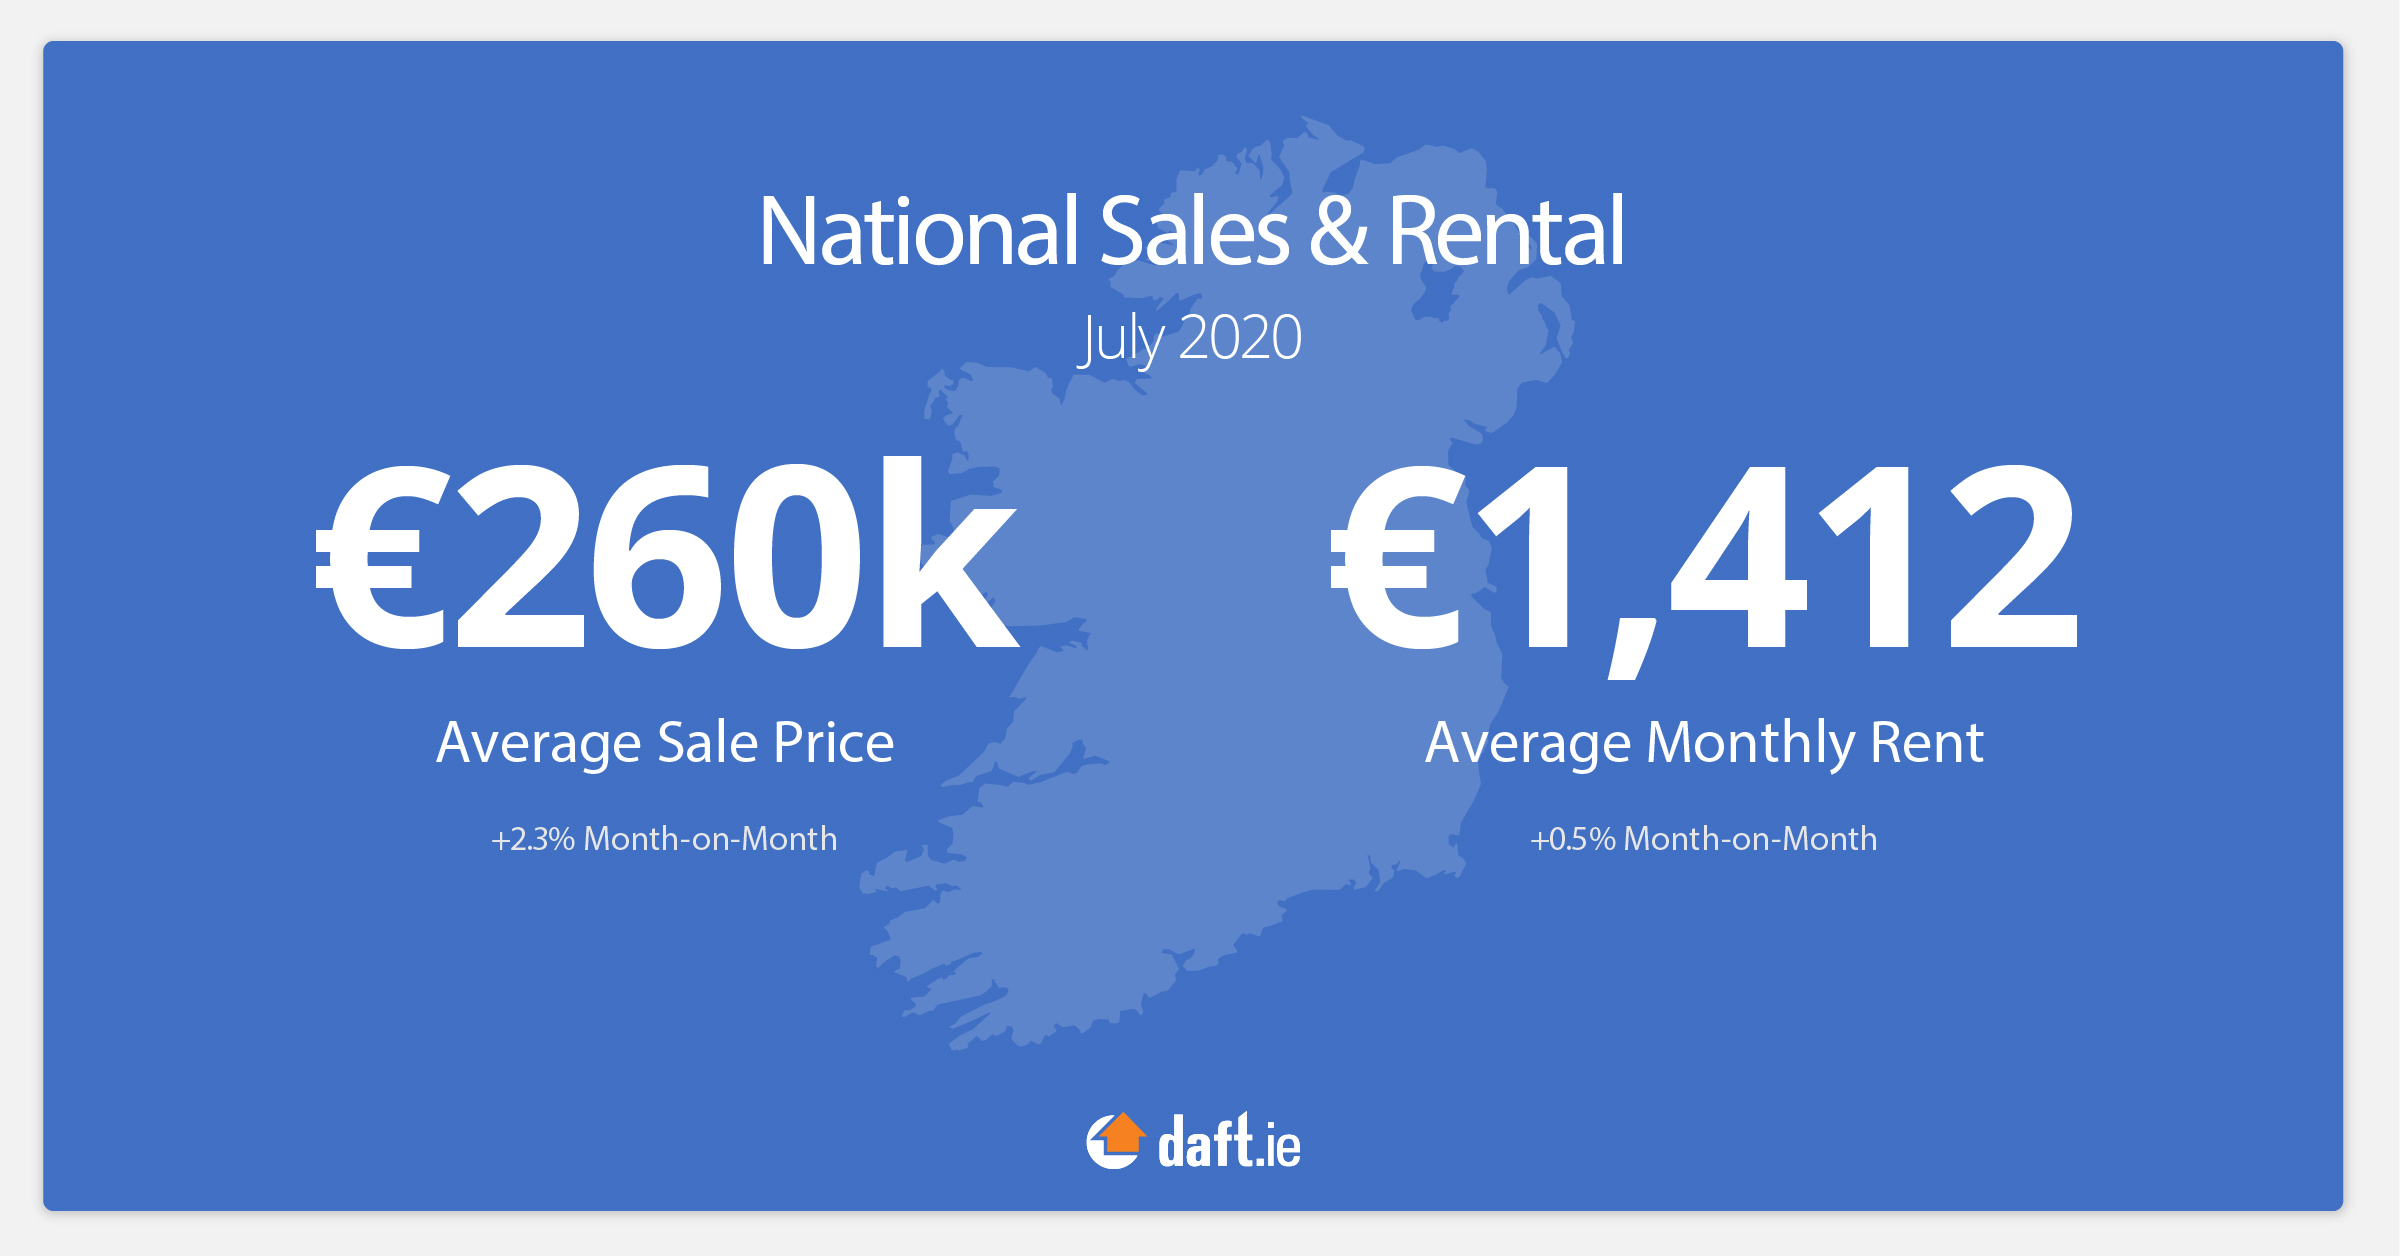 National sales and rental average prices